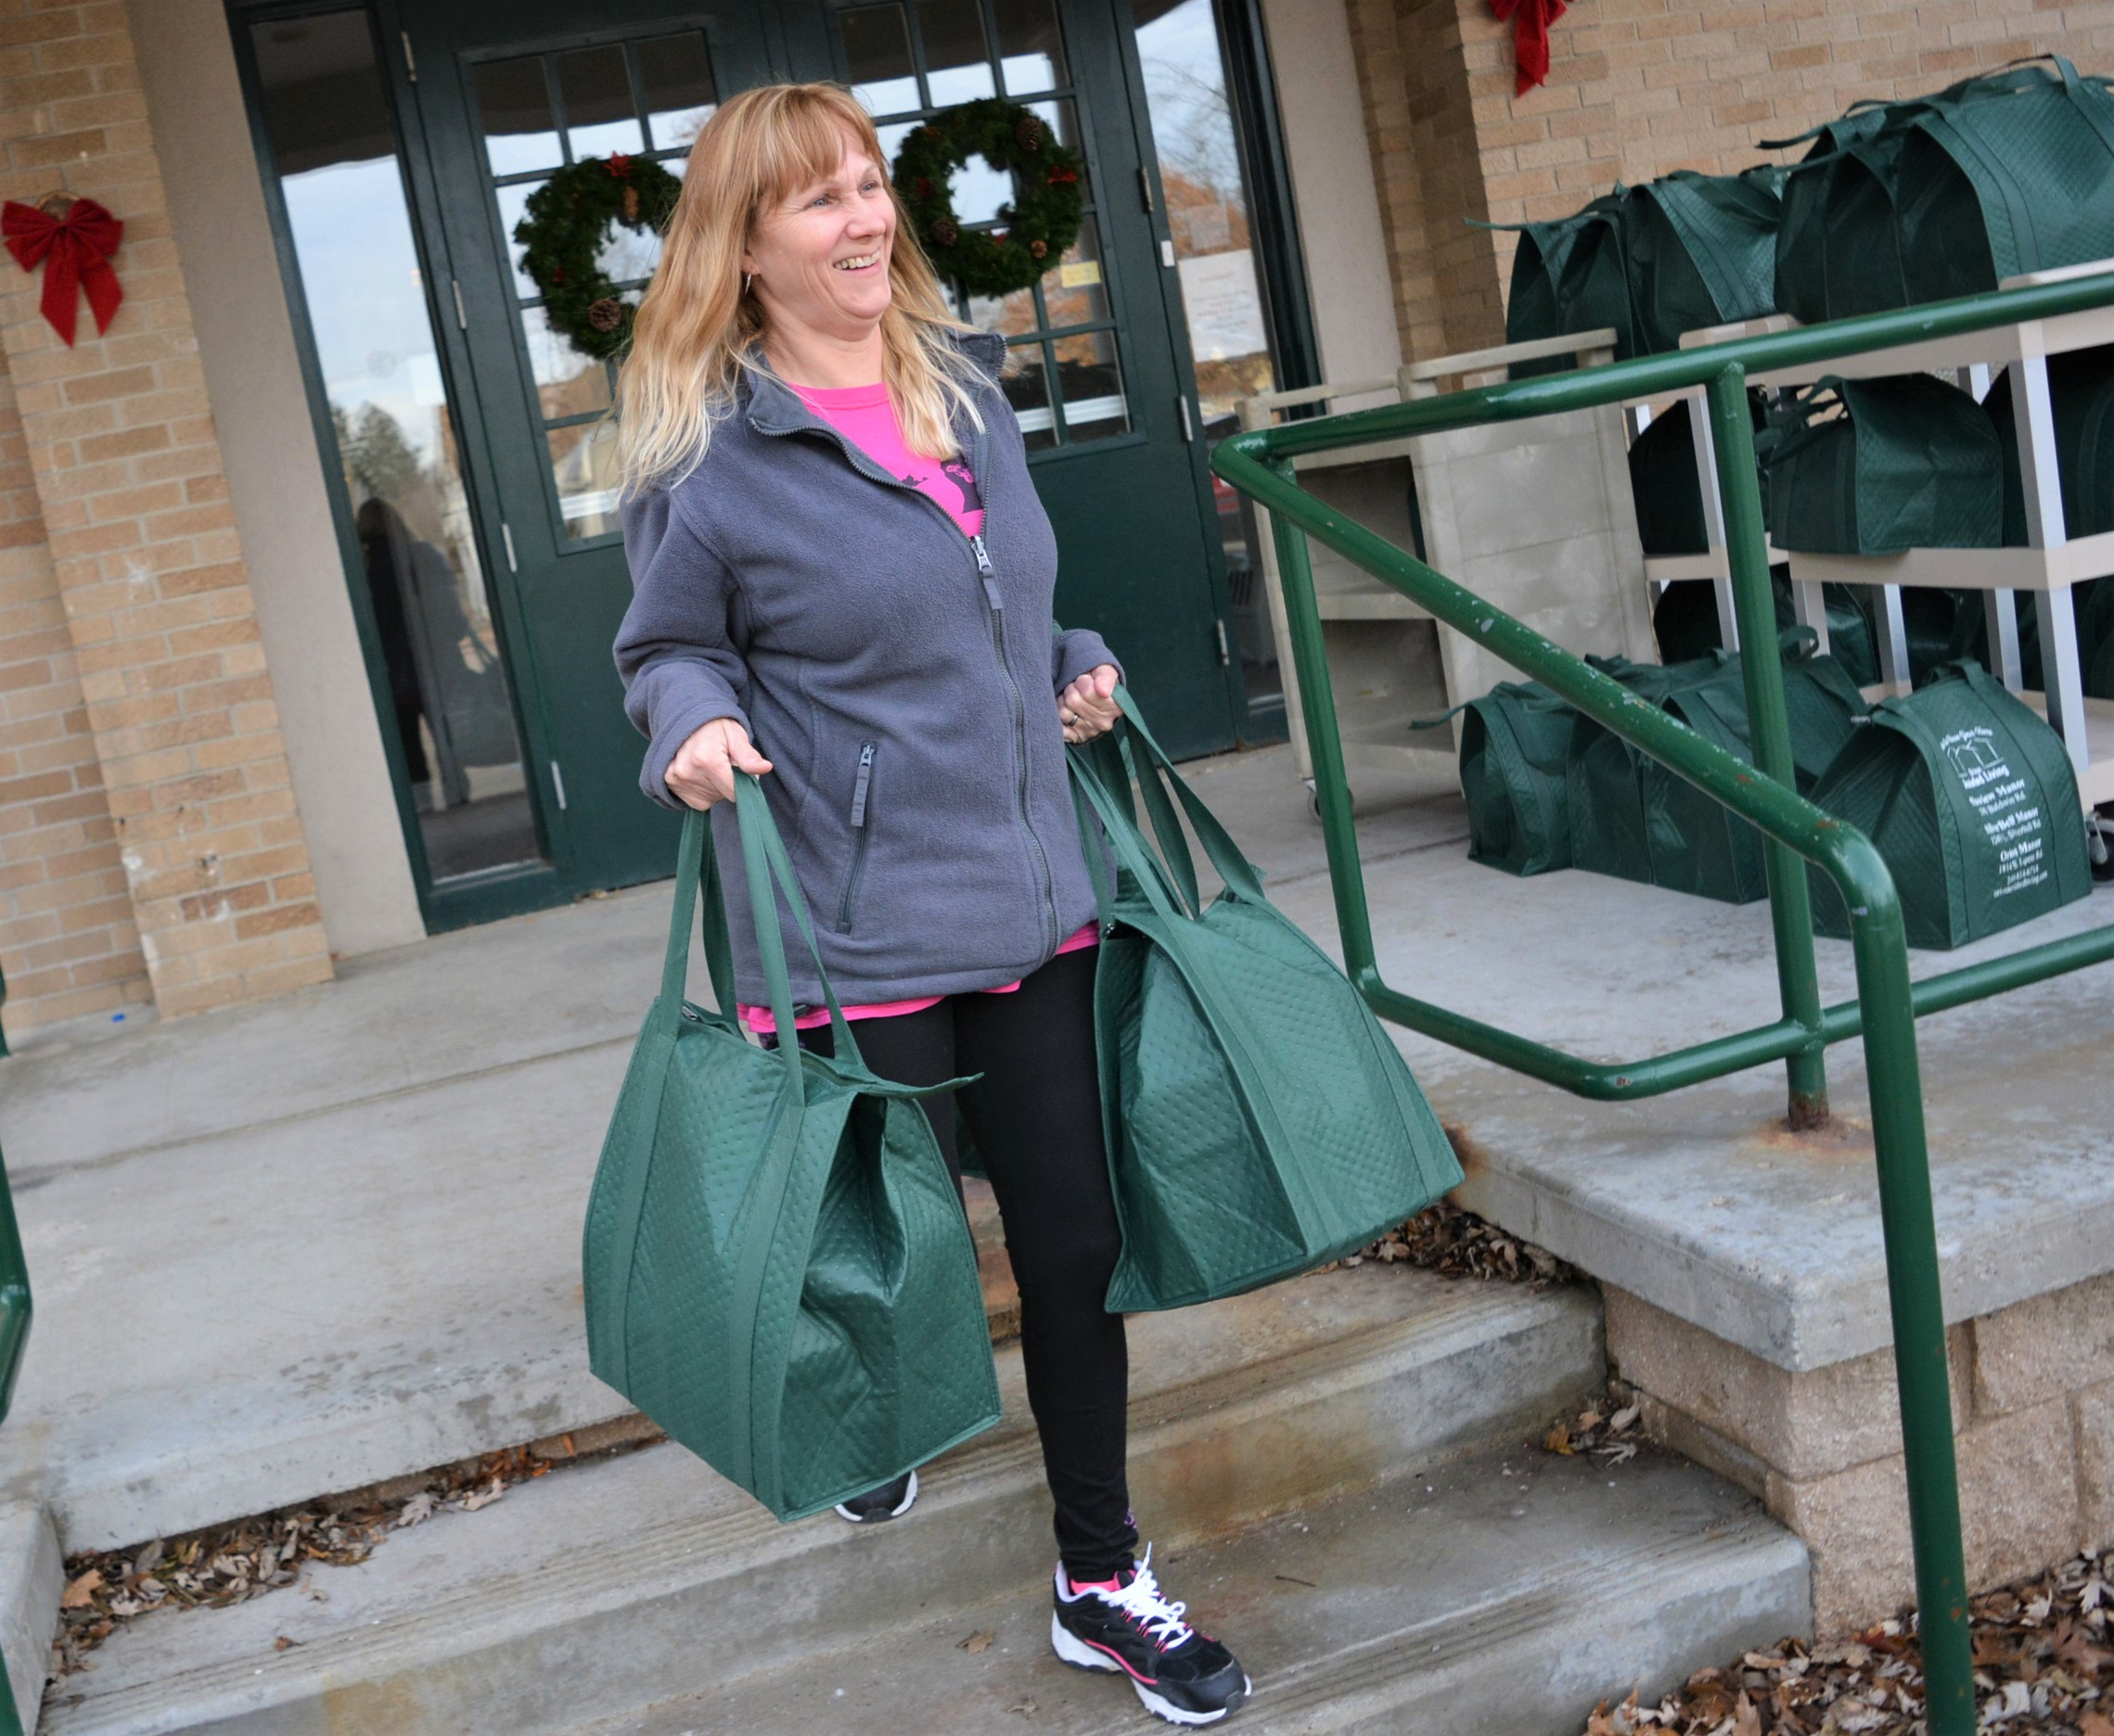 Meals on Wheels volunteer Christina Jeans, of Oxford, loads bags of food donated by North Oakland VFW Post 334 in preparation for delivering them to senior citizens on Dec. 19. Photo by C.J. Carnacchio.